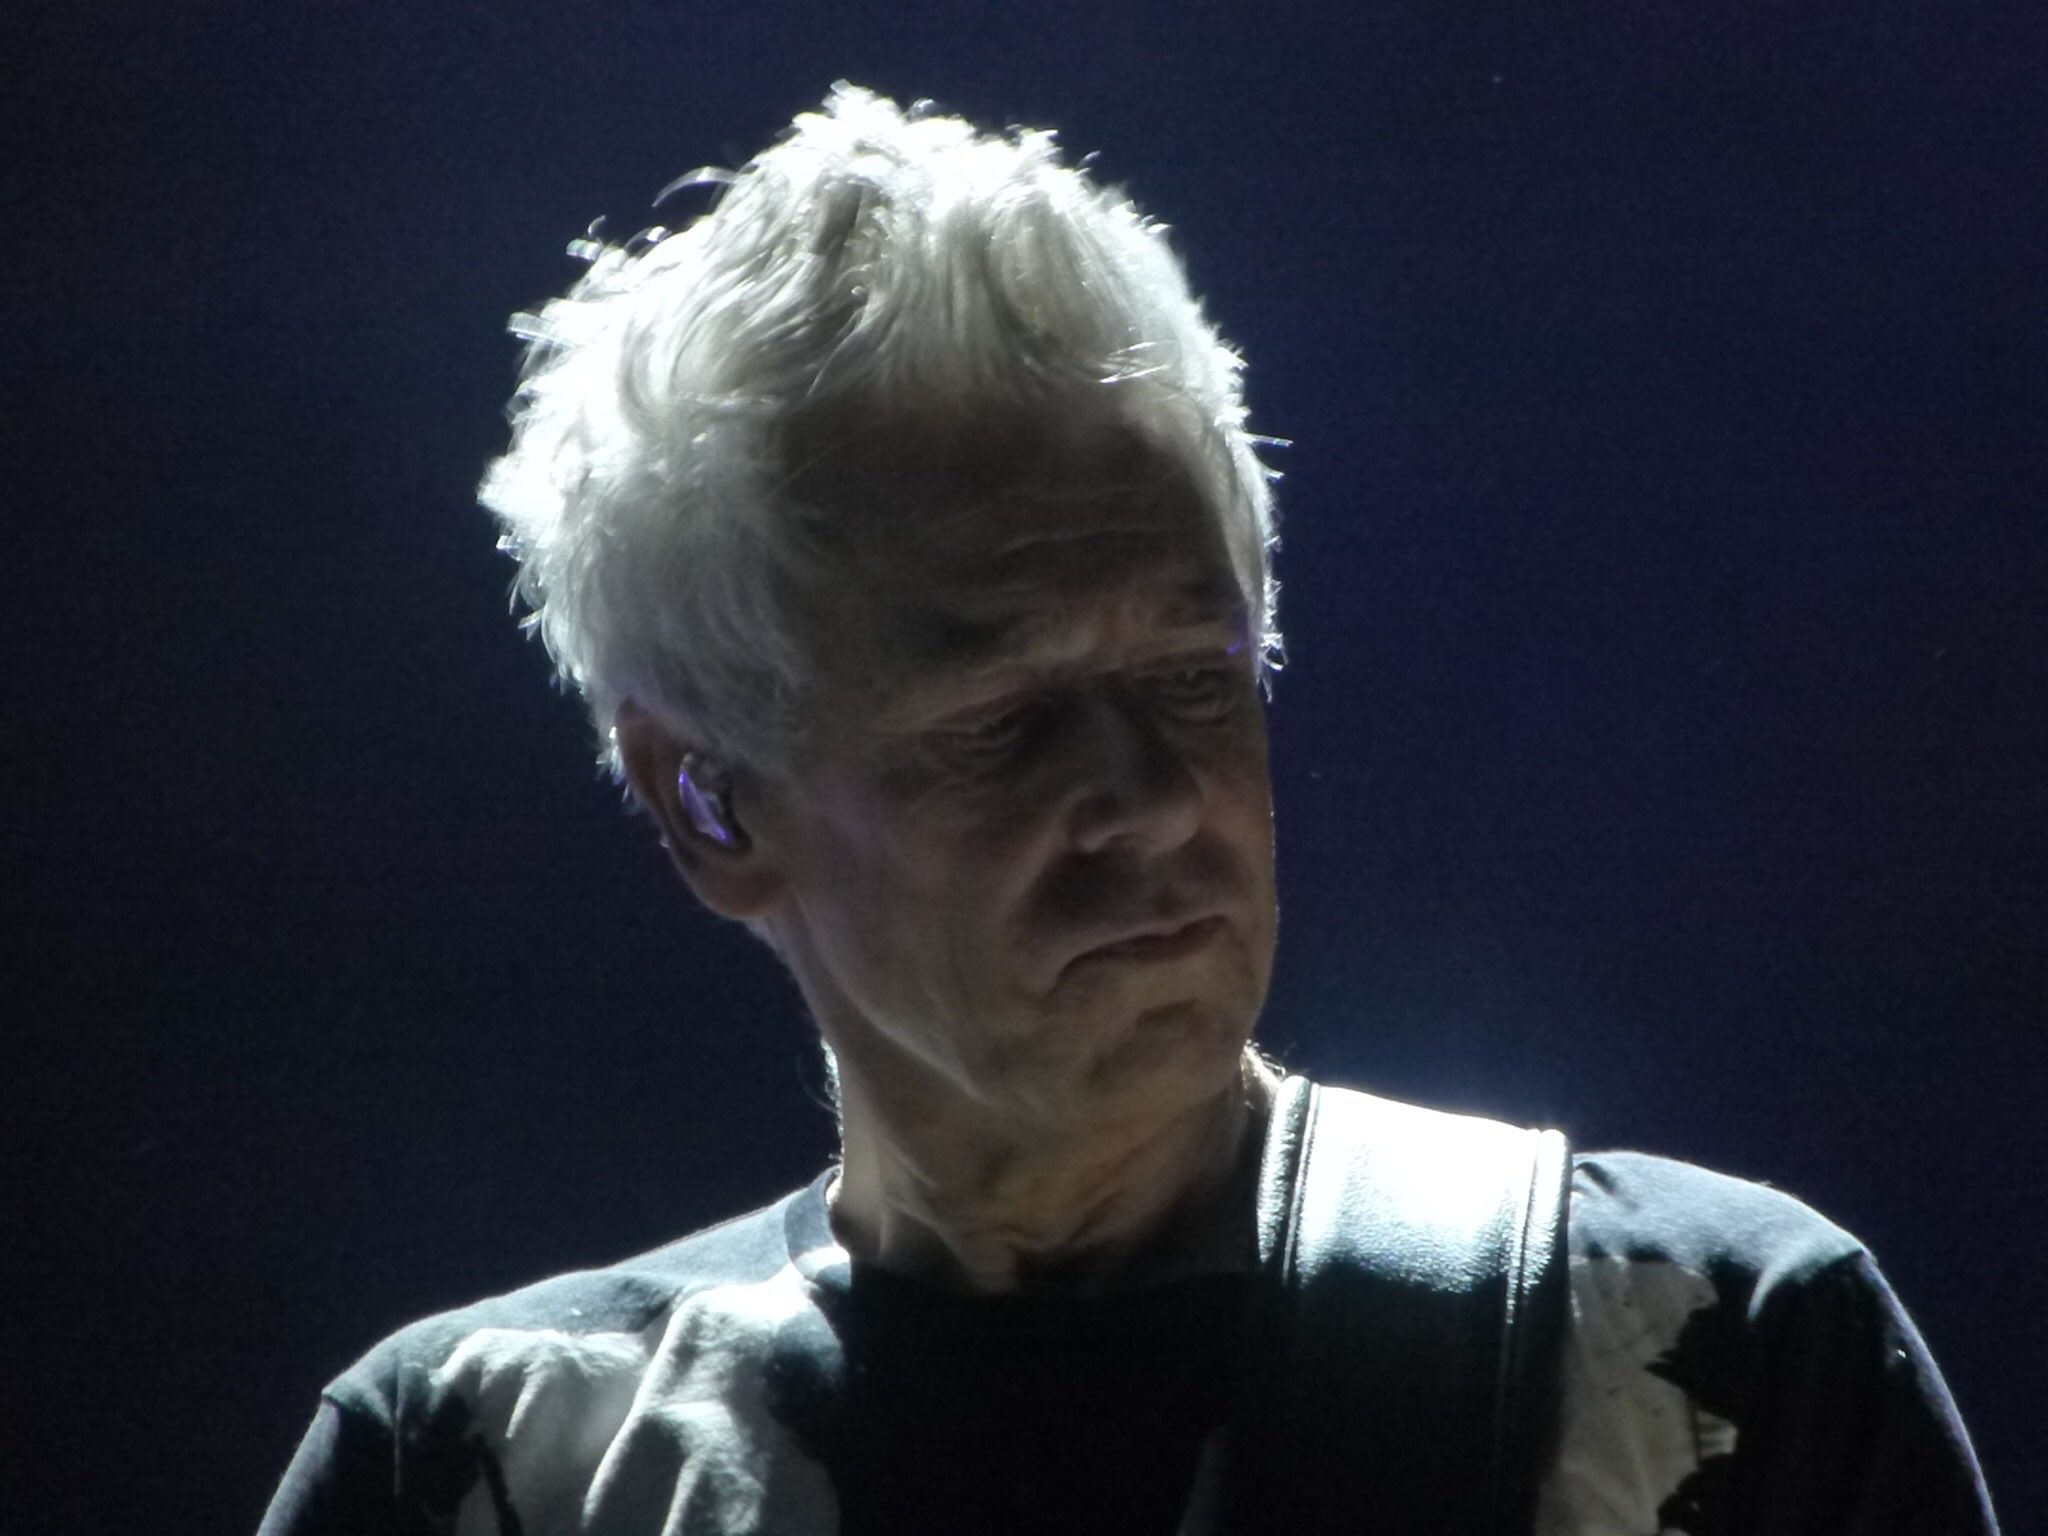 Happy birthday to the gorgeous guitar hero Adam Clayton